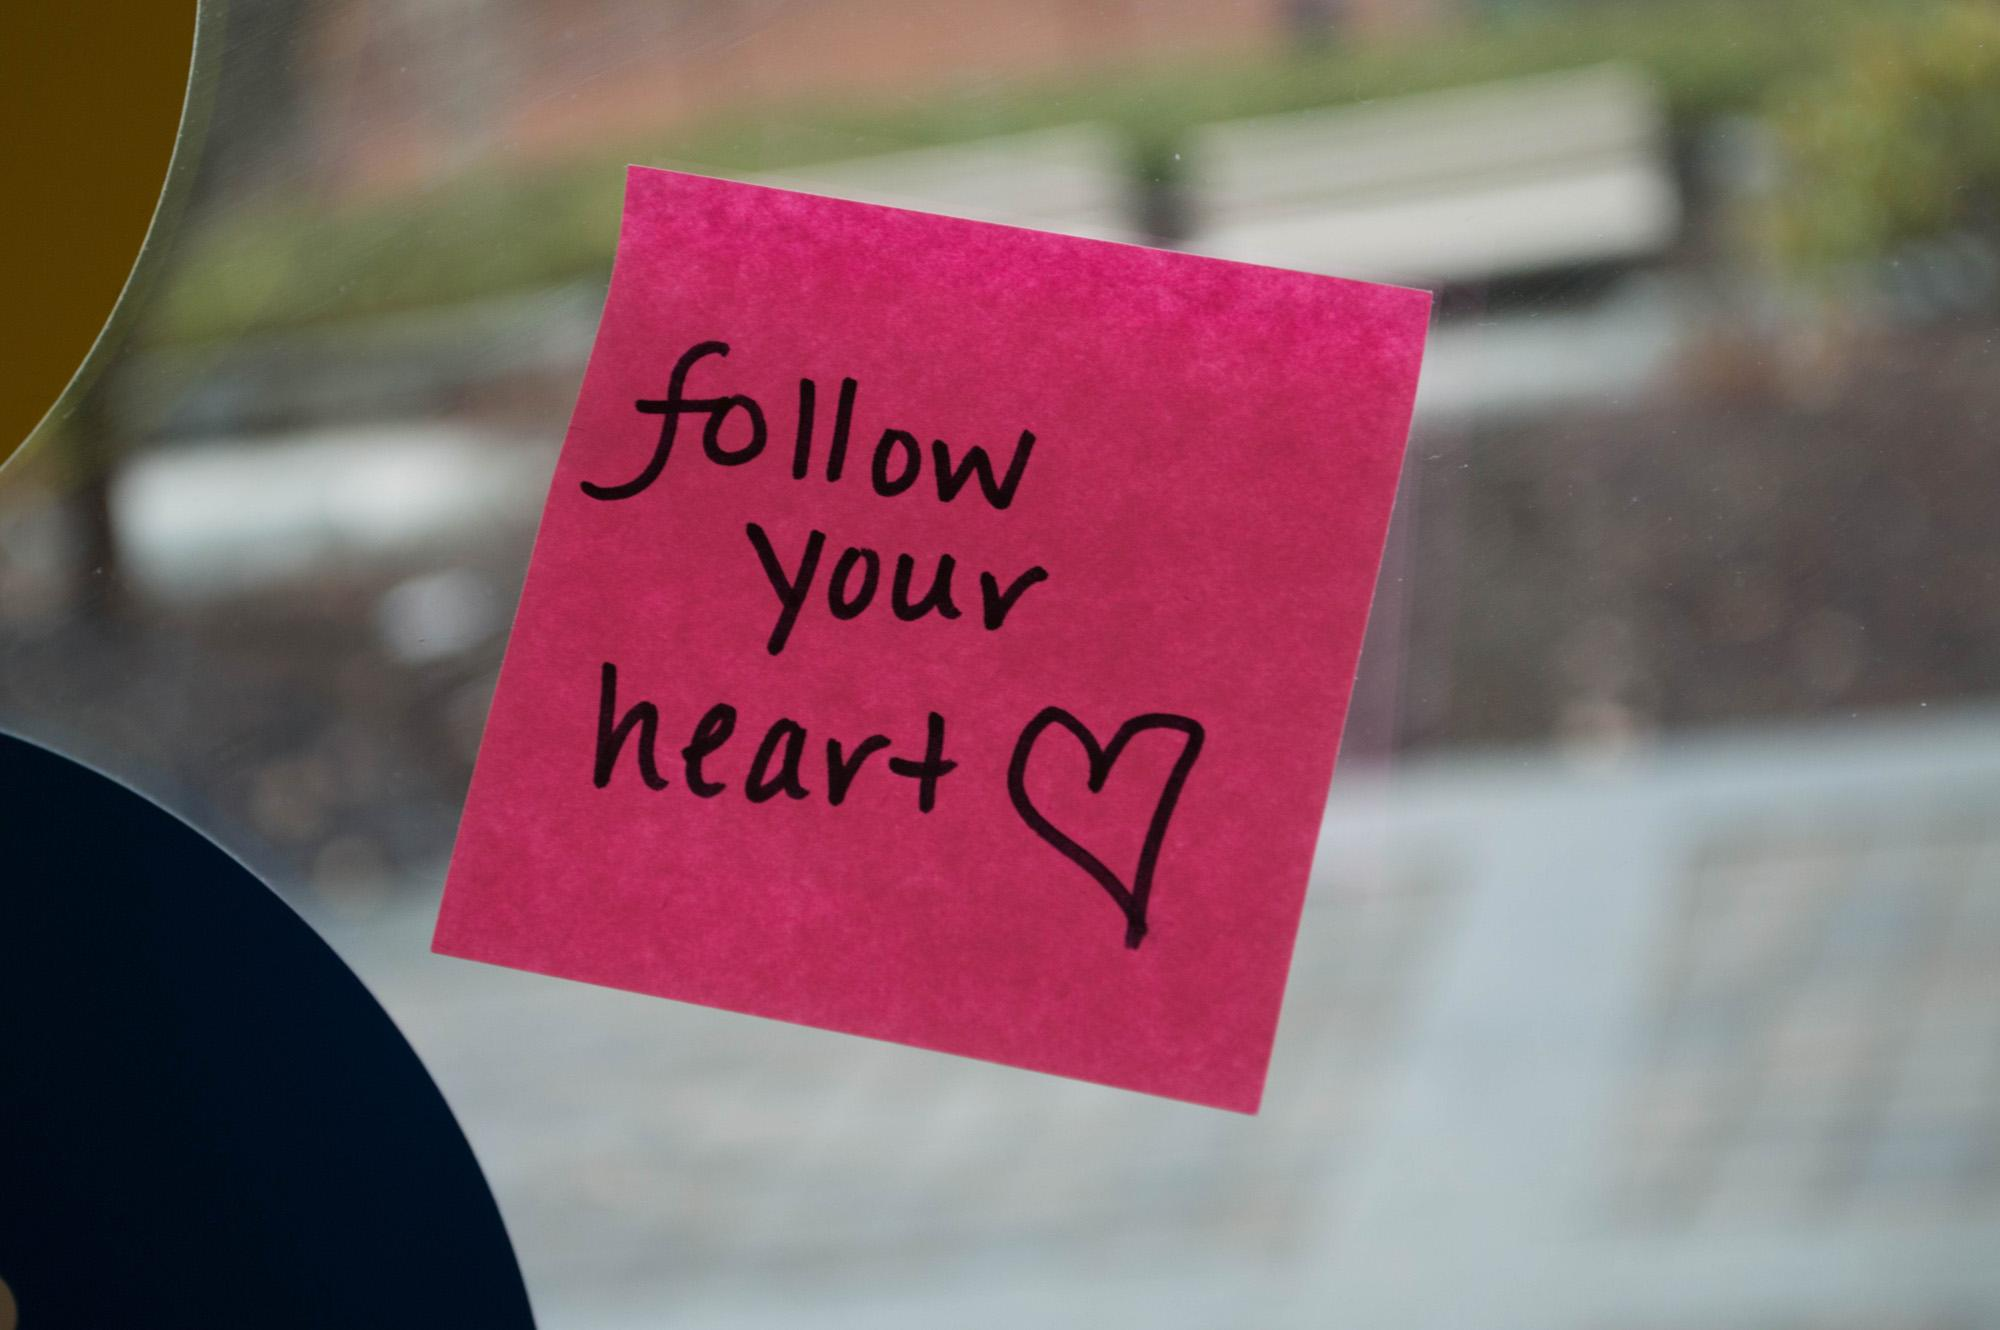 In Photos: Positive post-its